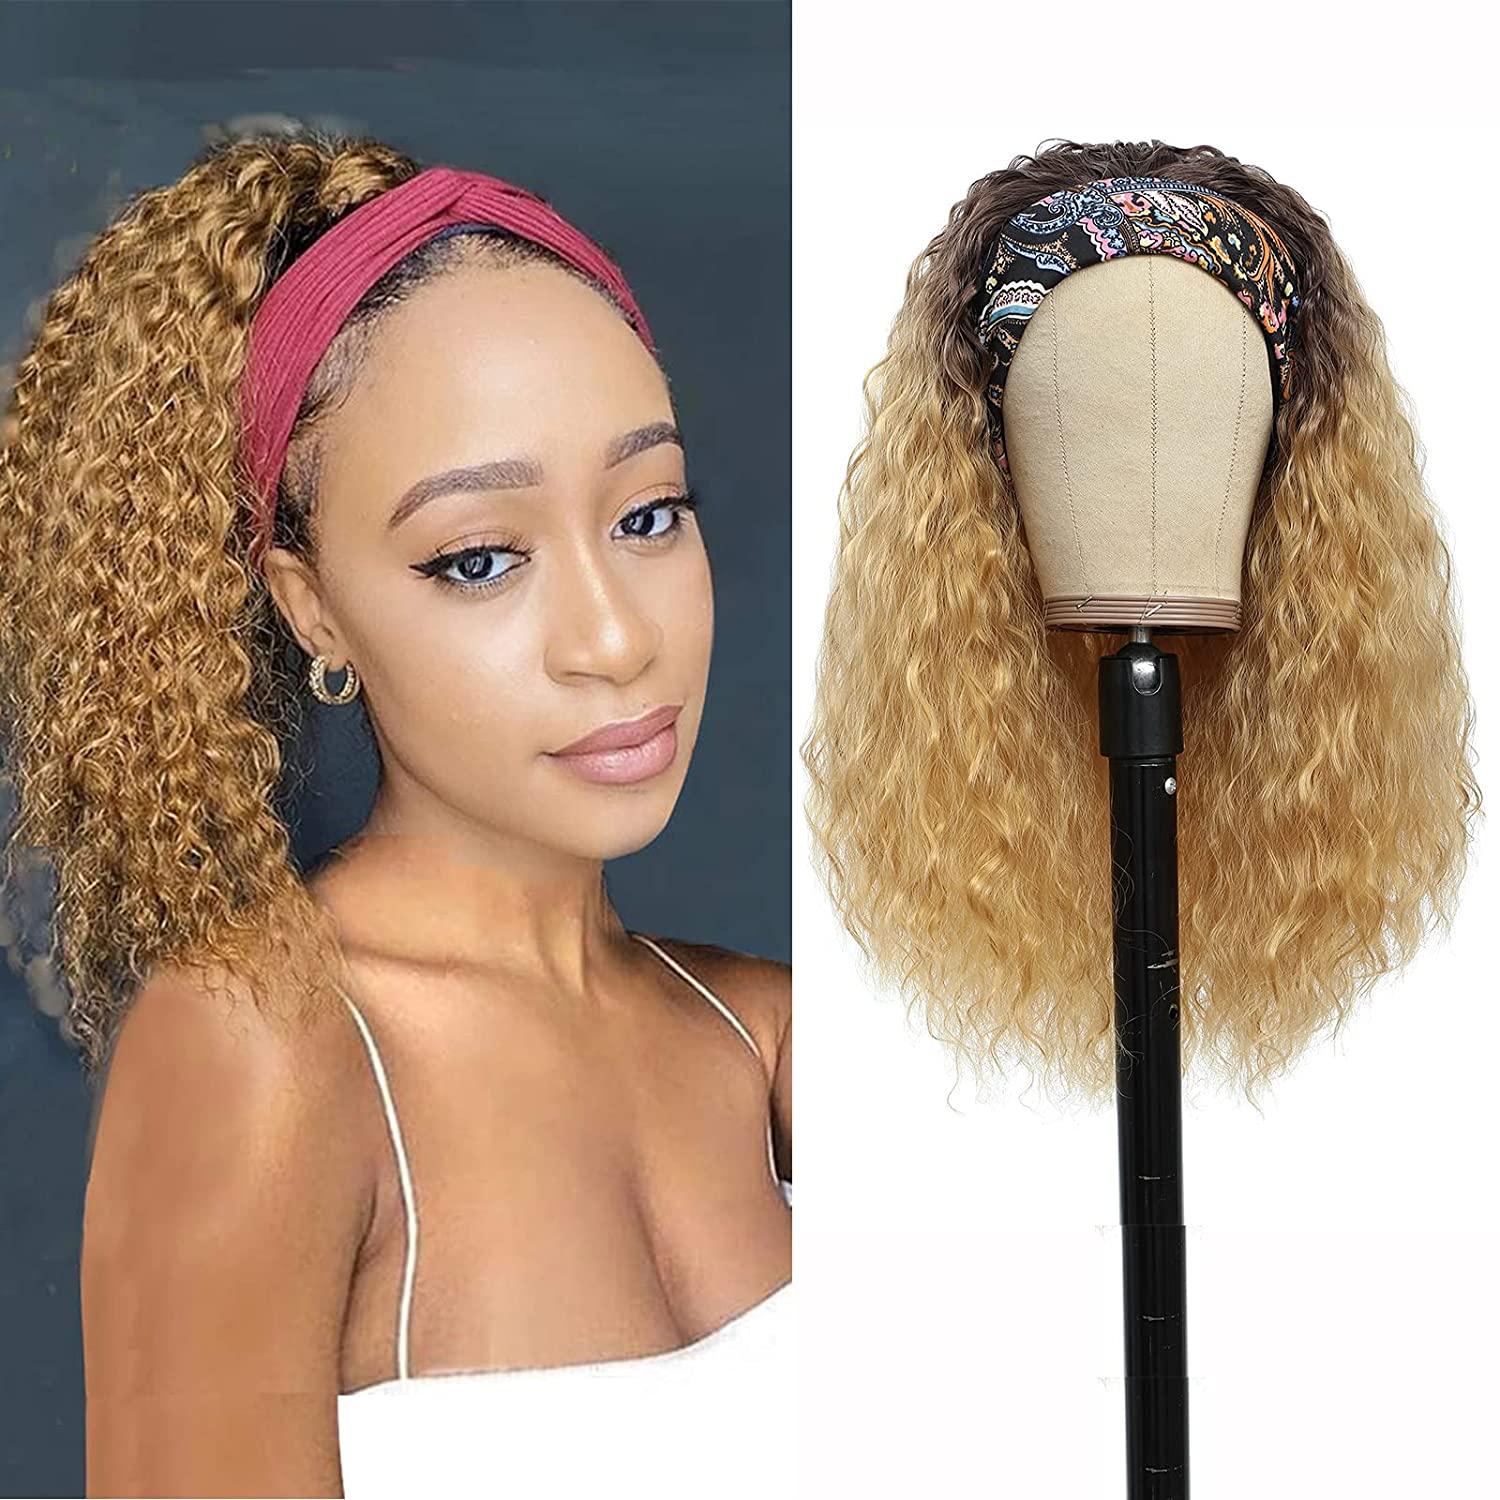 Water Wave Headband Wigs for Black 40% OFF Cheap Sale Wet Women Synthetics Limited time trial price Wavy and